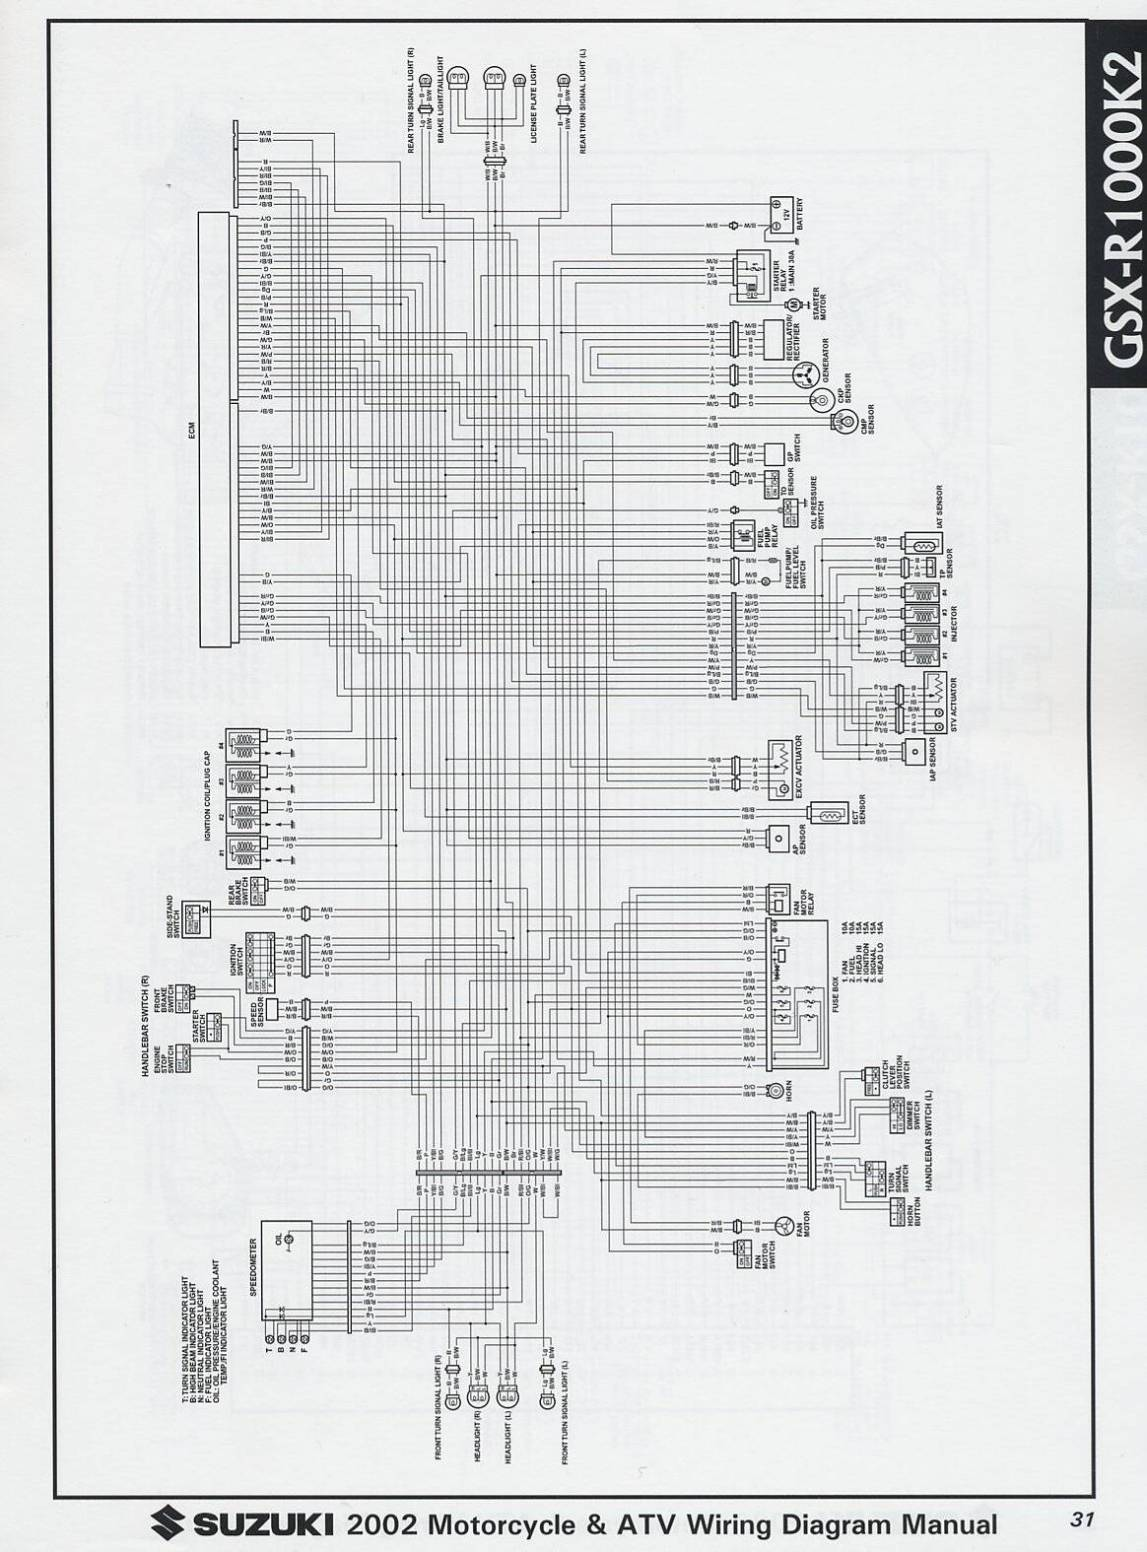 gsxr 750 wiring diagram wiring diagram suzuki gsxr 750 wiring diagram and hernes diagram as well honda shadow